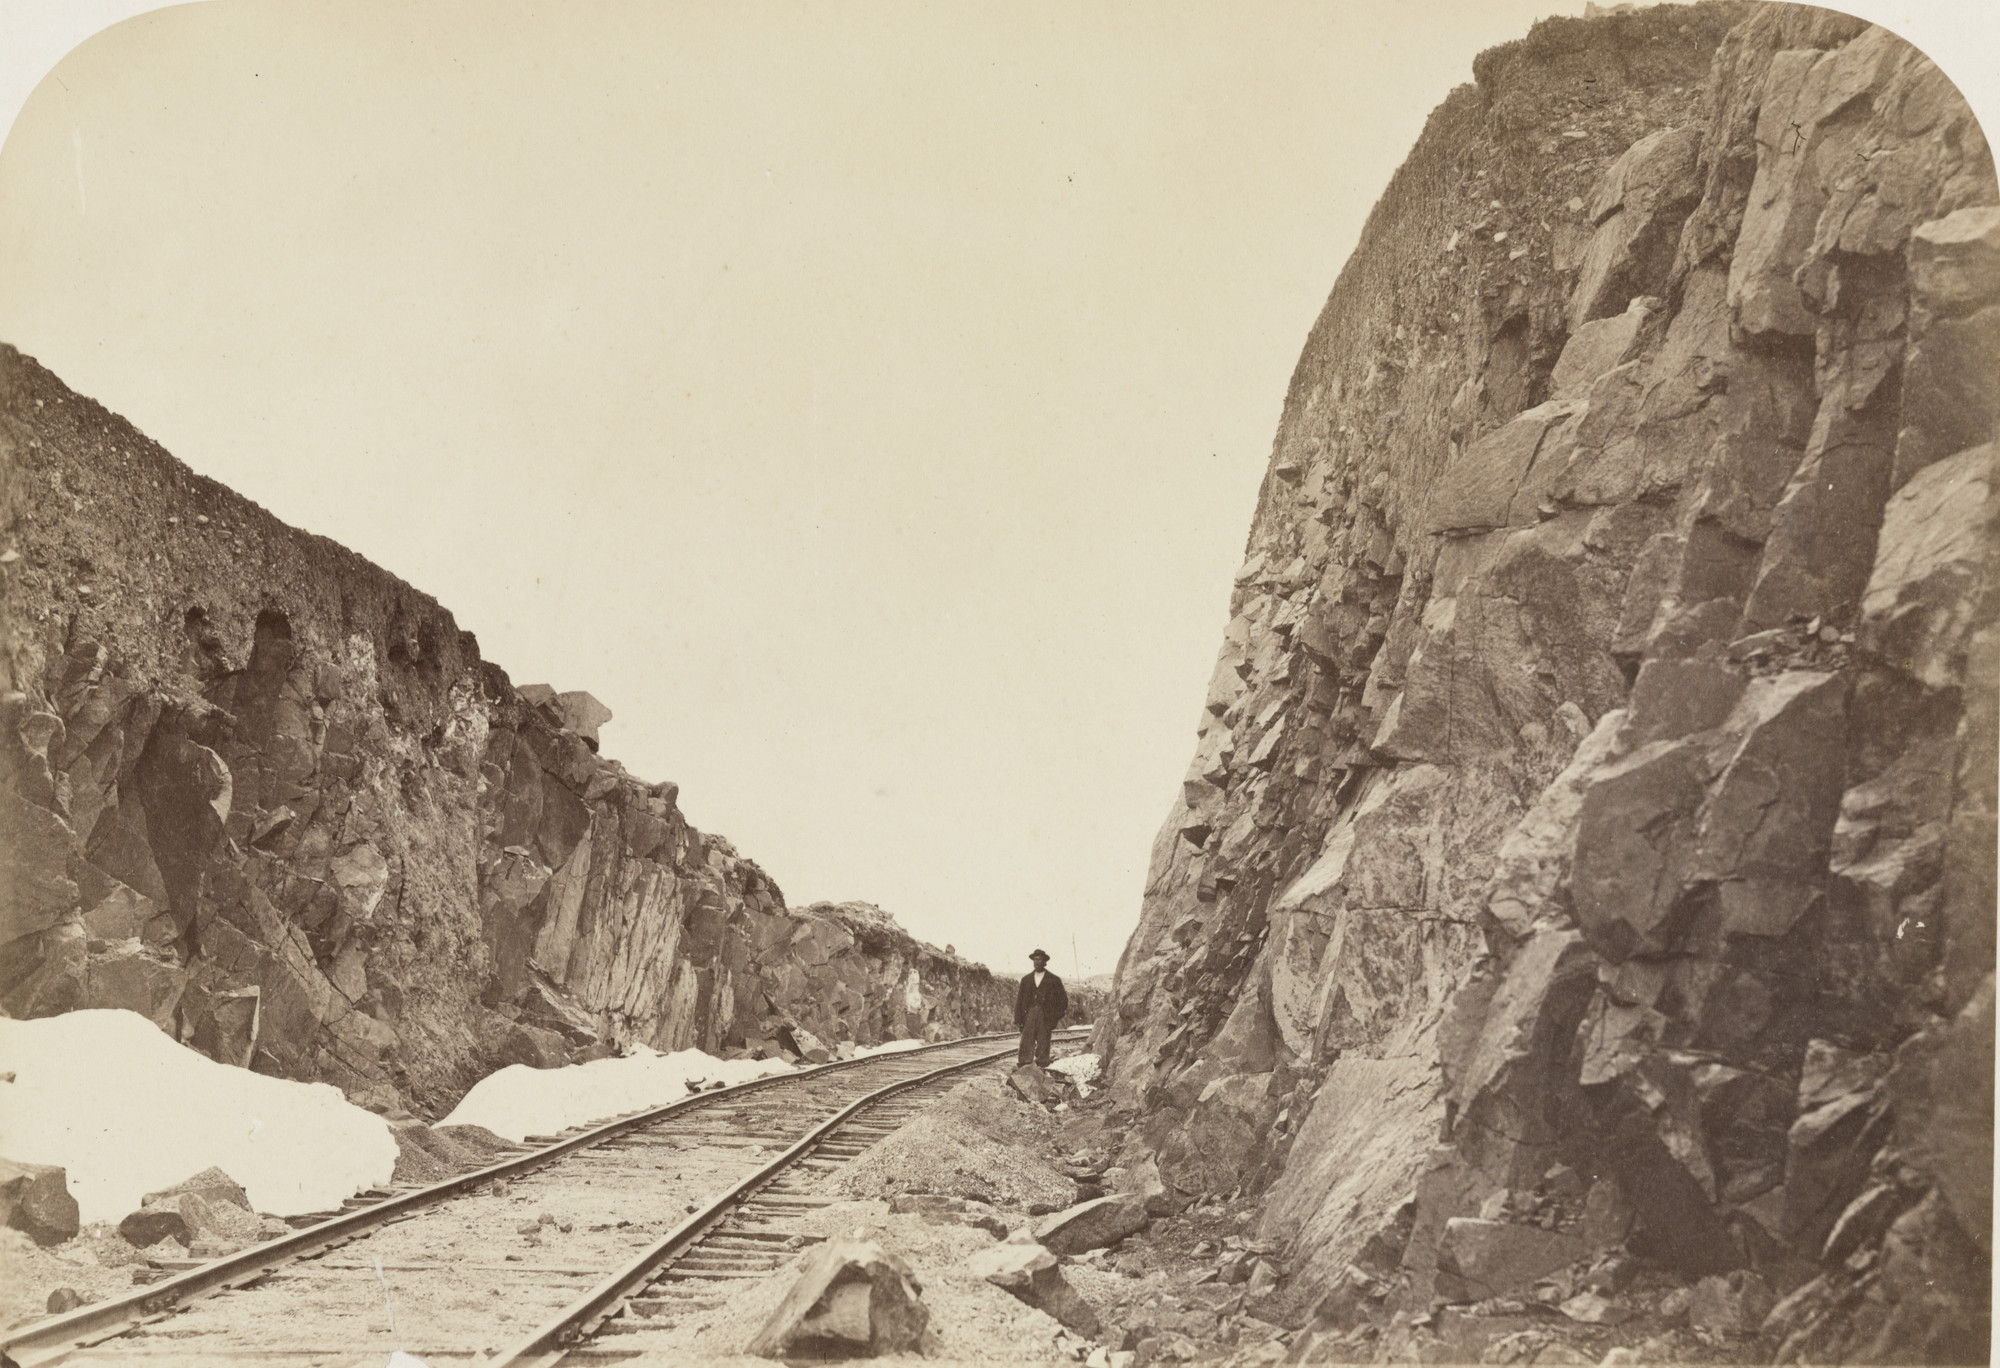 Andrew Joseph Russell. Hill's Farm, Near Granite Canyon. 1867